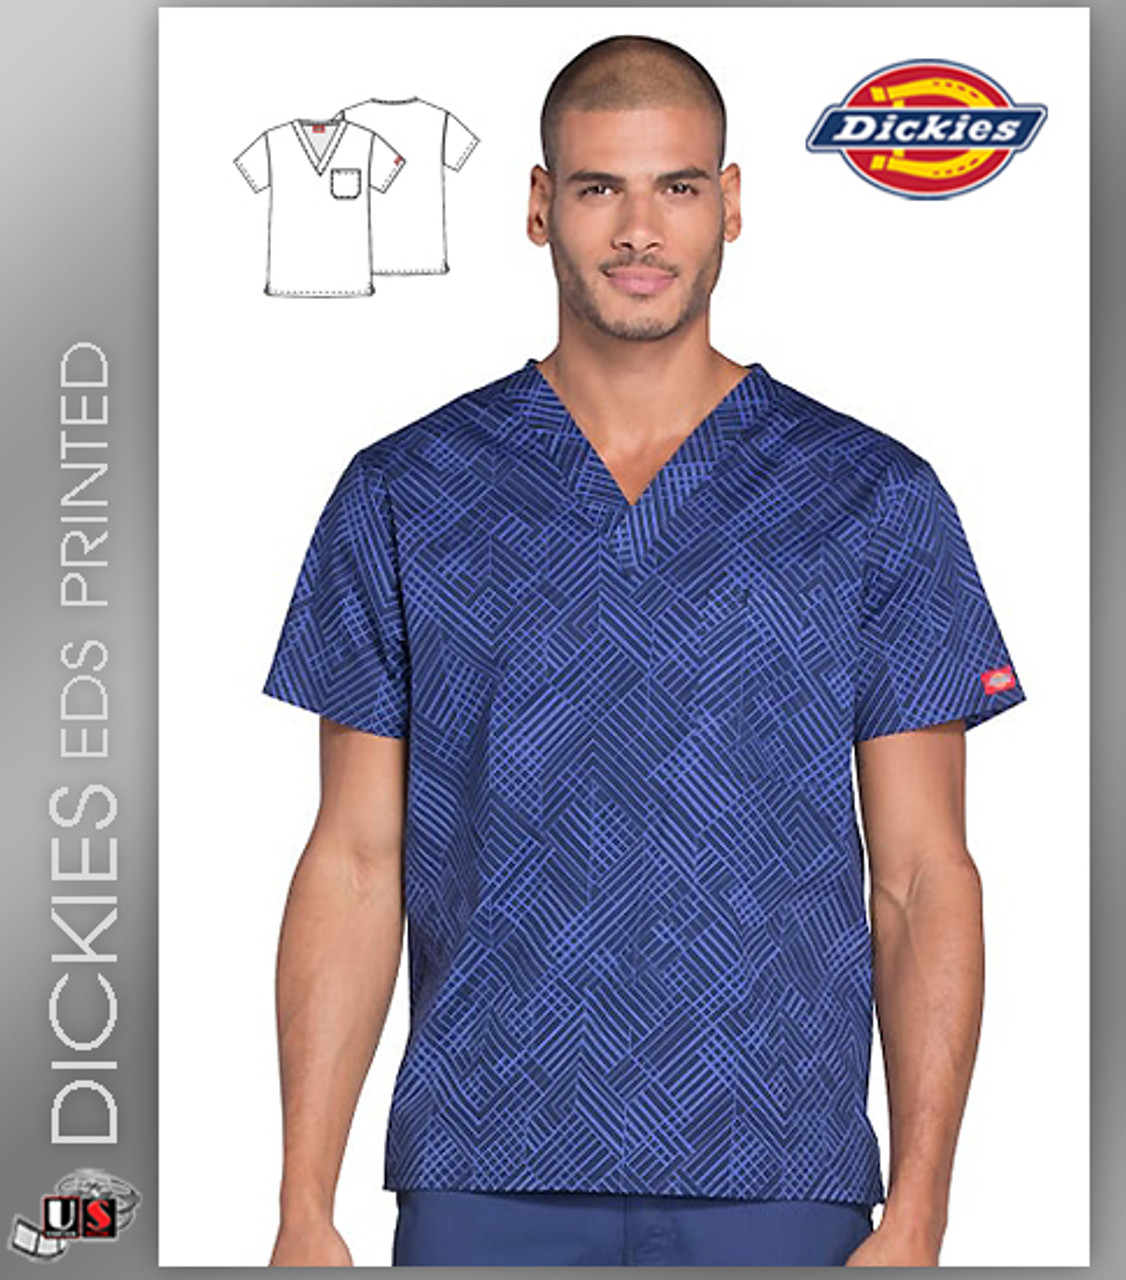 62c2a2ac226f6c Dickies EDS Signature Men's V-Neck What's Your Point? Print Scrub Top -  Dental Supplies,Inc